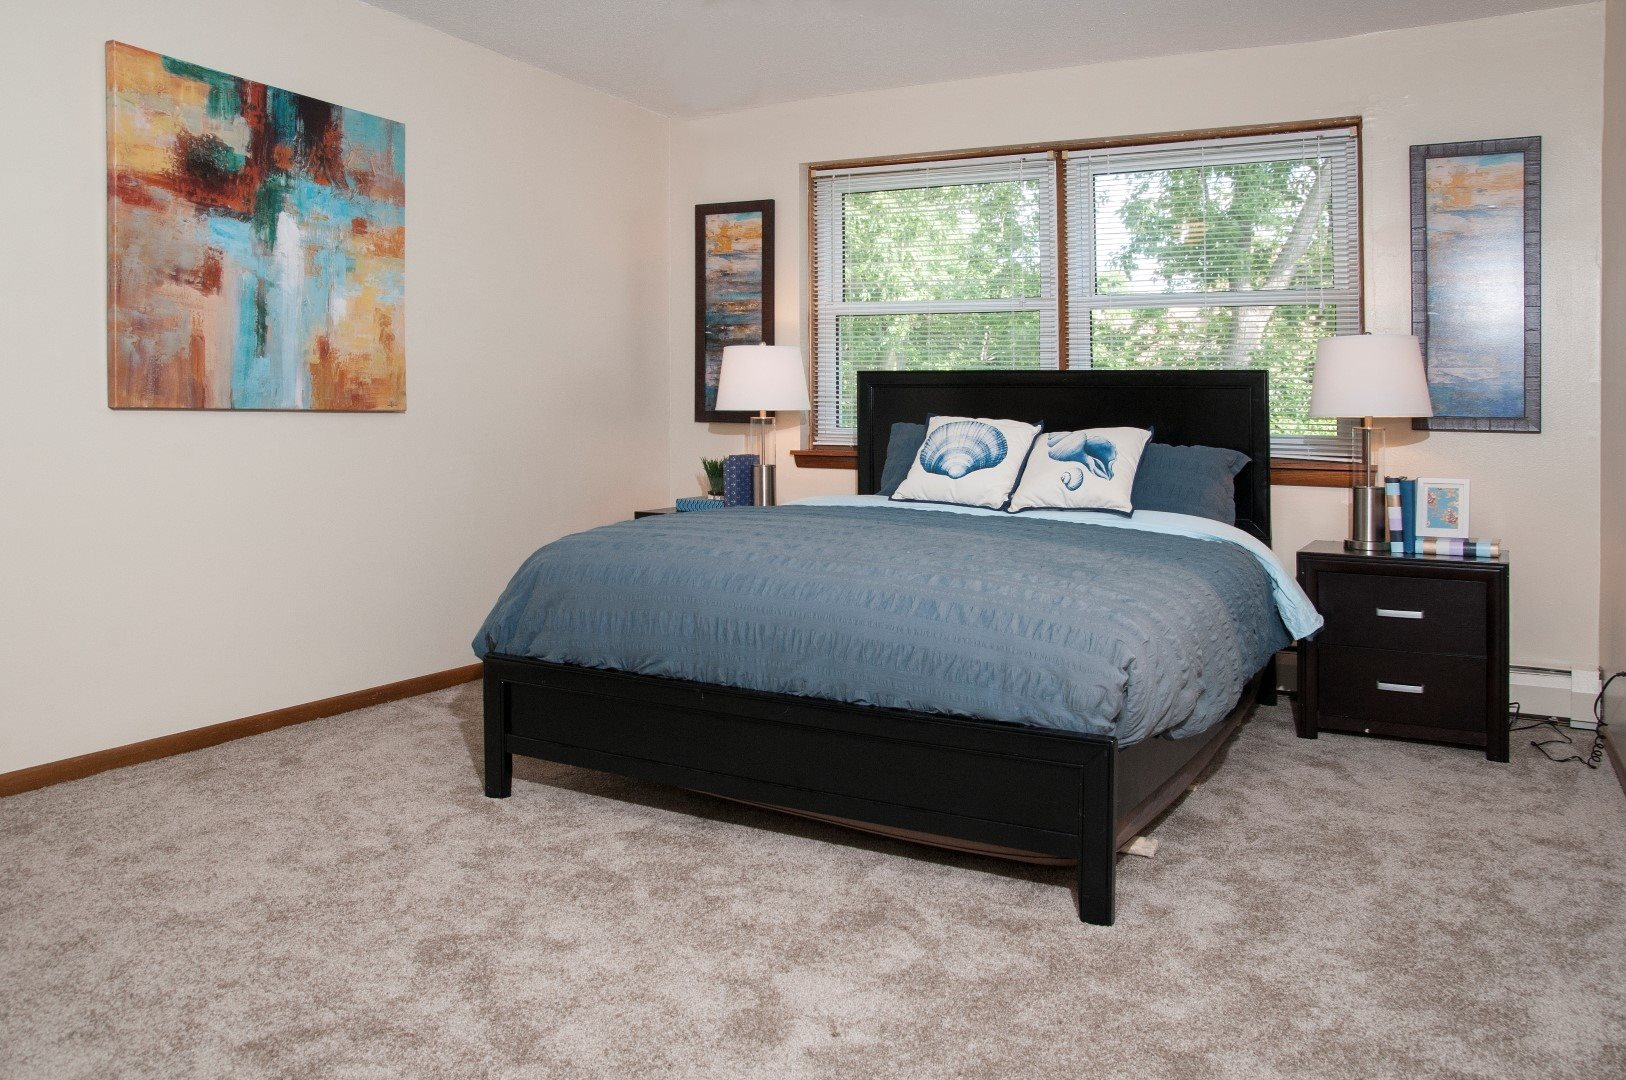 2416 Blaisdell apartments uptown large bedroom